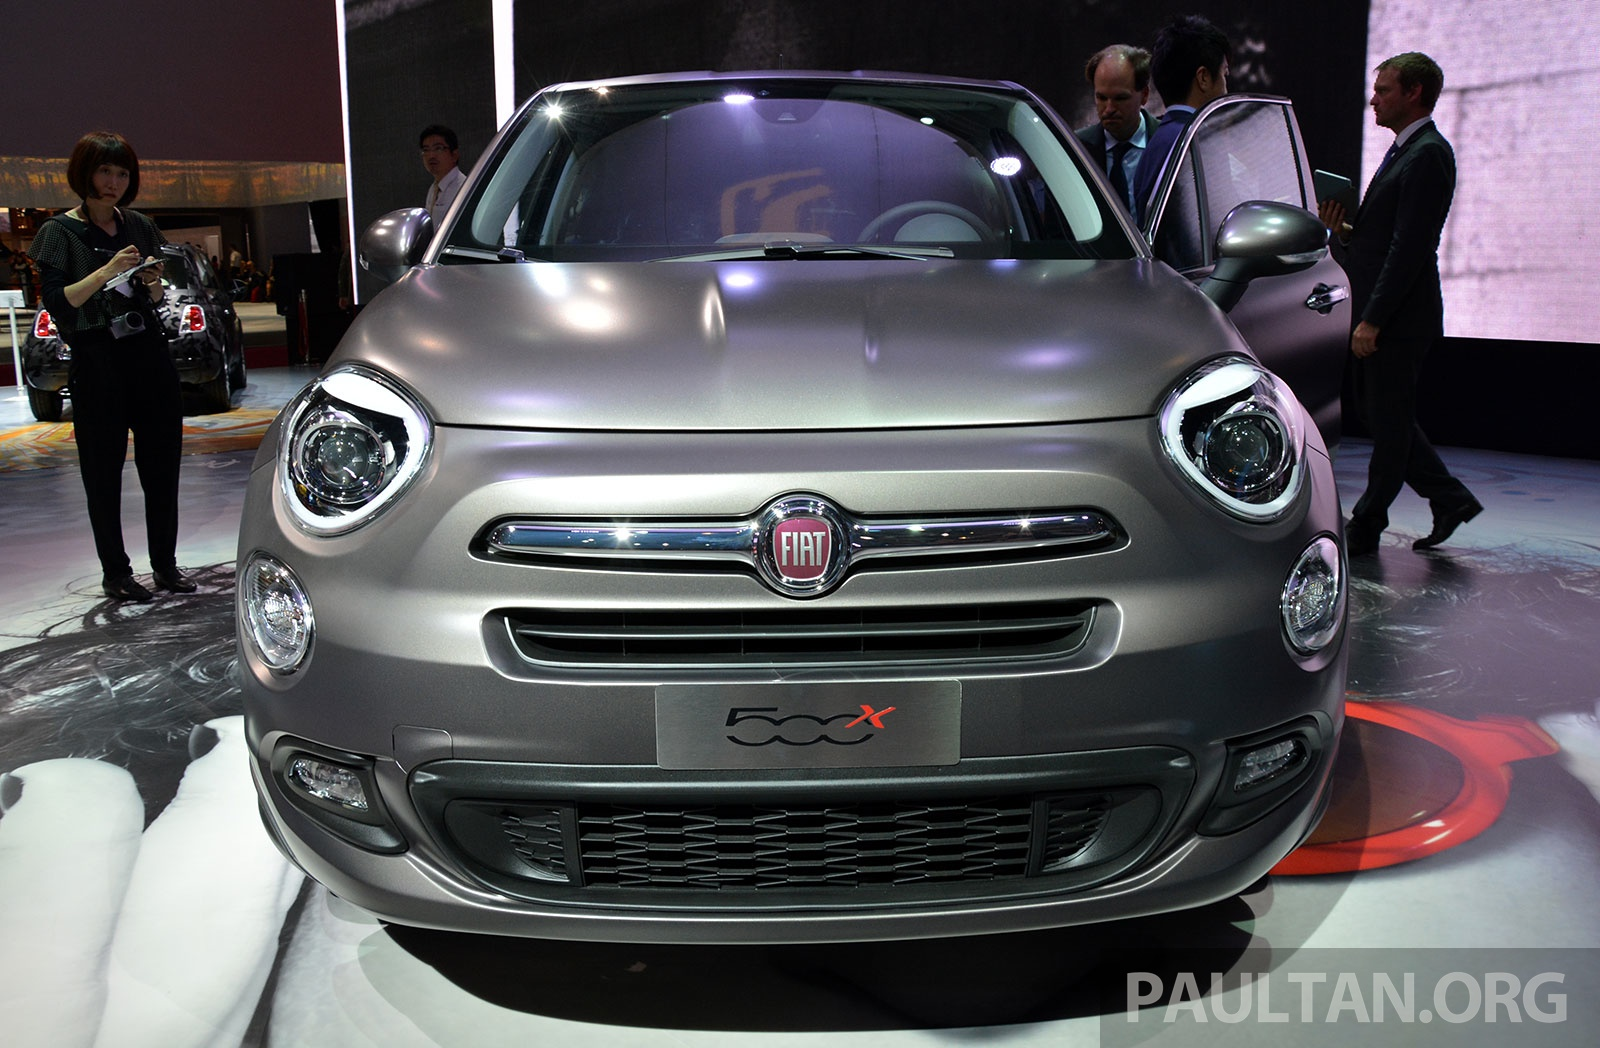 fiat 500x mini crossover officially unveiled in paris image 277830. Black Bedroom Furniture Sets. Home Design Ideas